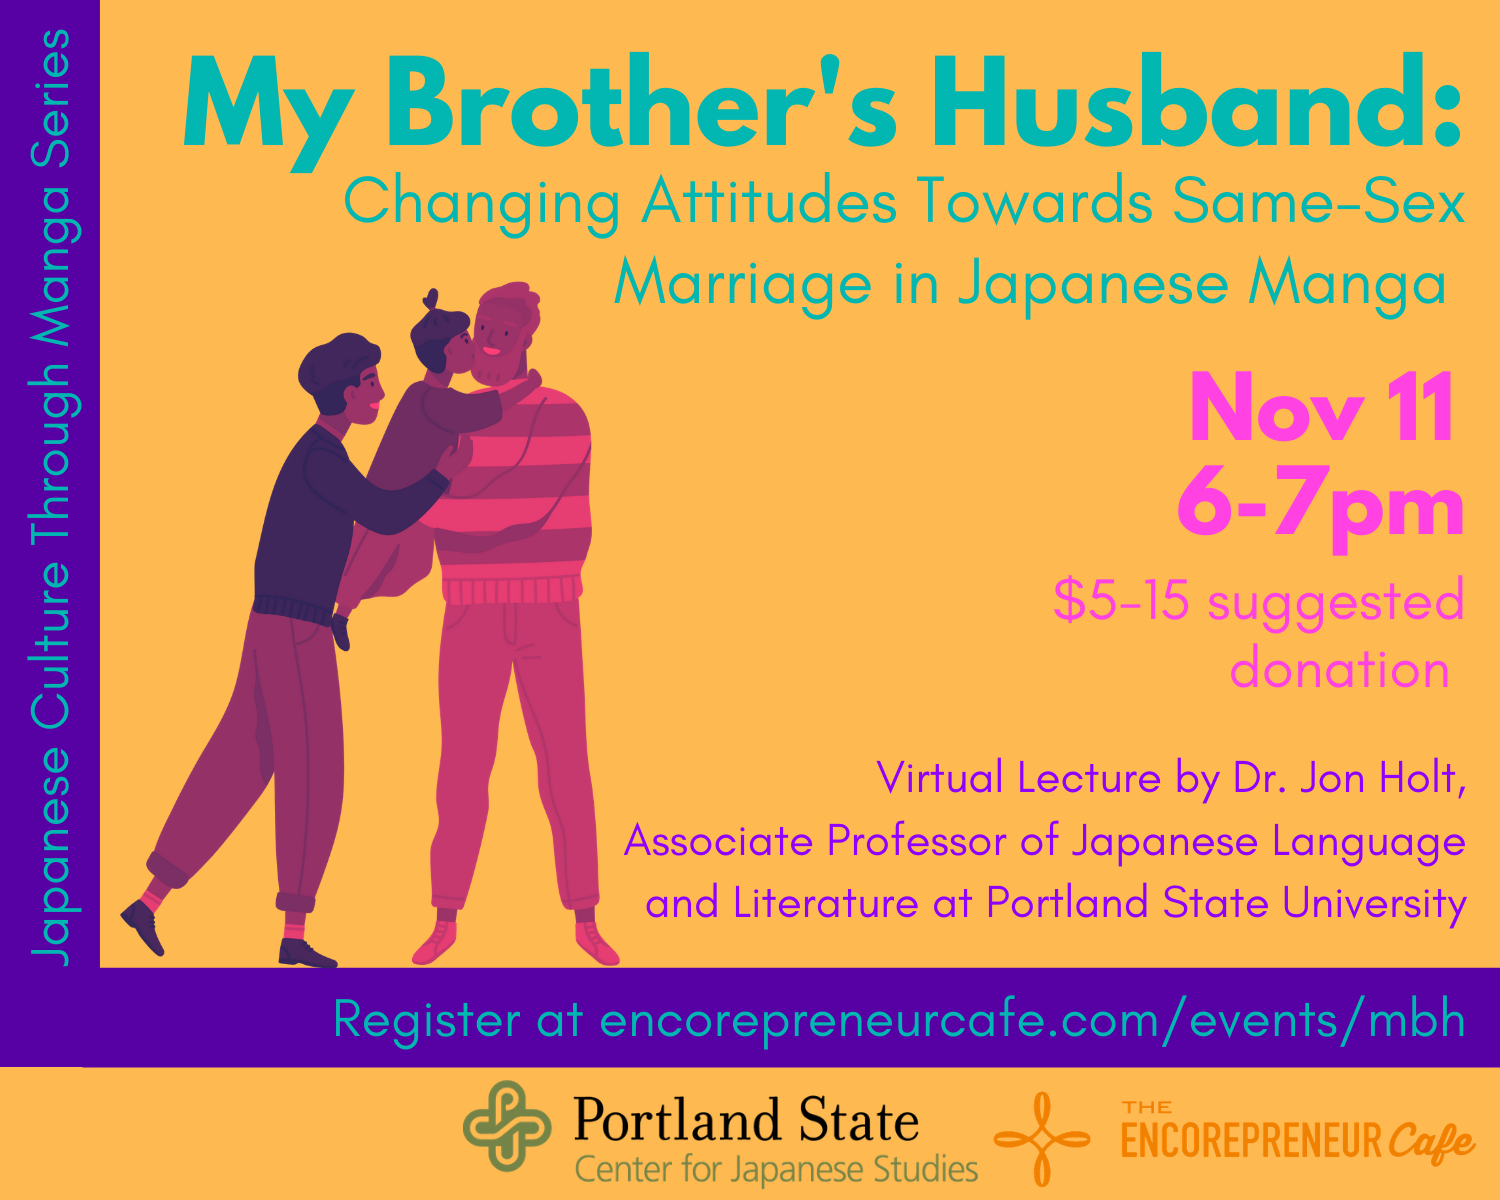 Flyer for My Brother's Husband lecture event with image of two men holding their daugher